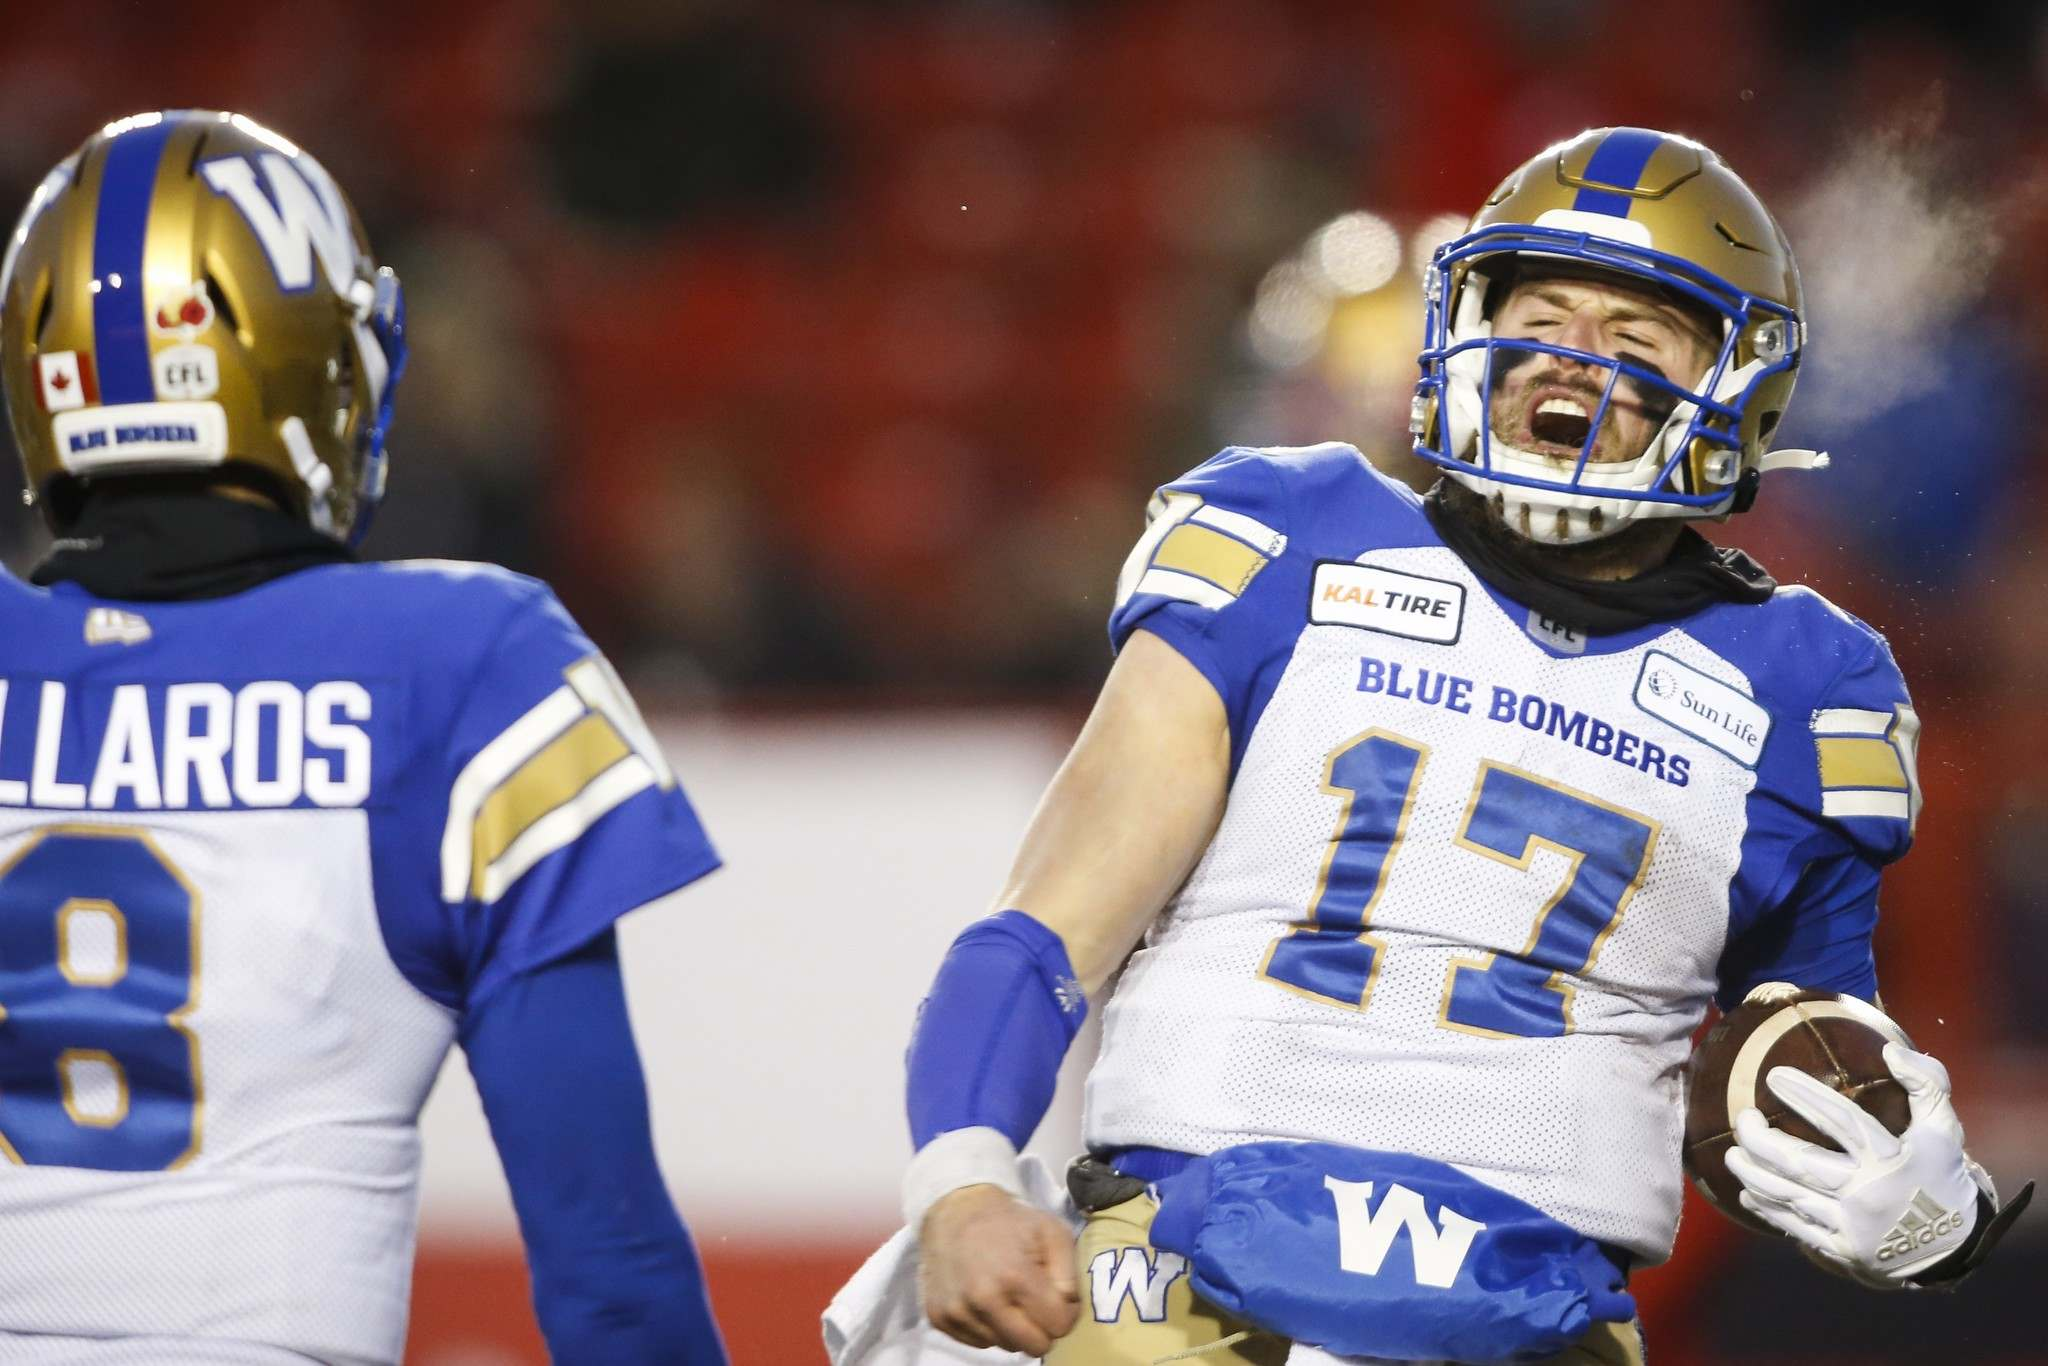 Quarterbacks Zach Collaros and Chris Streveler proved to be a great one-two punch in Calgary last weekend. (Jeff McIntosh / The Canadian Press files)</p>